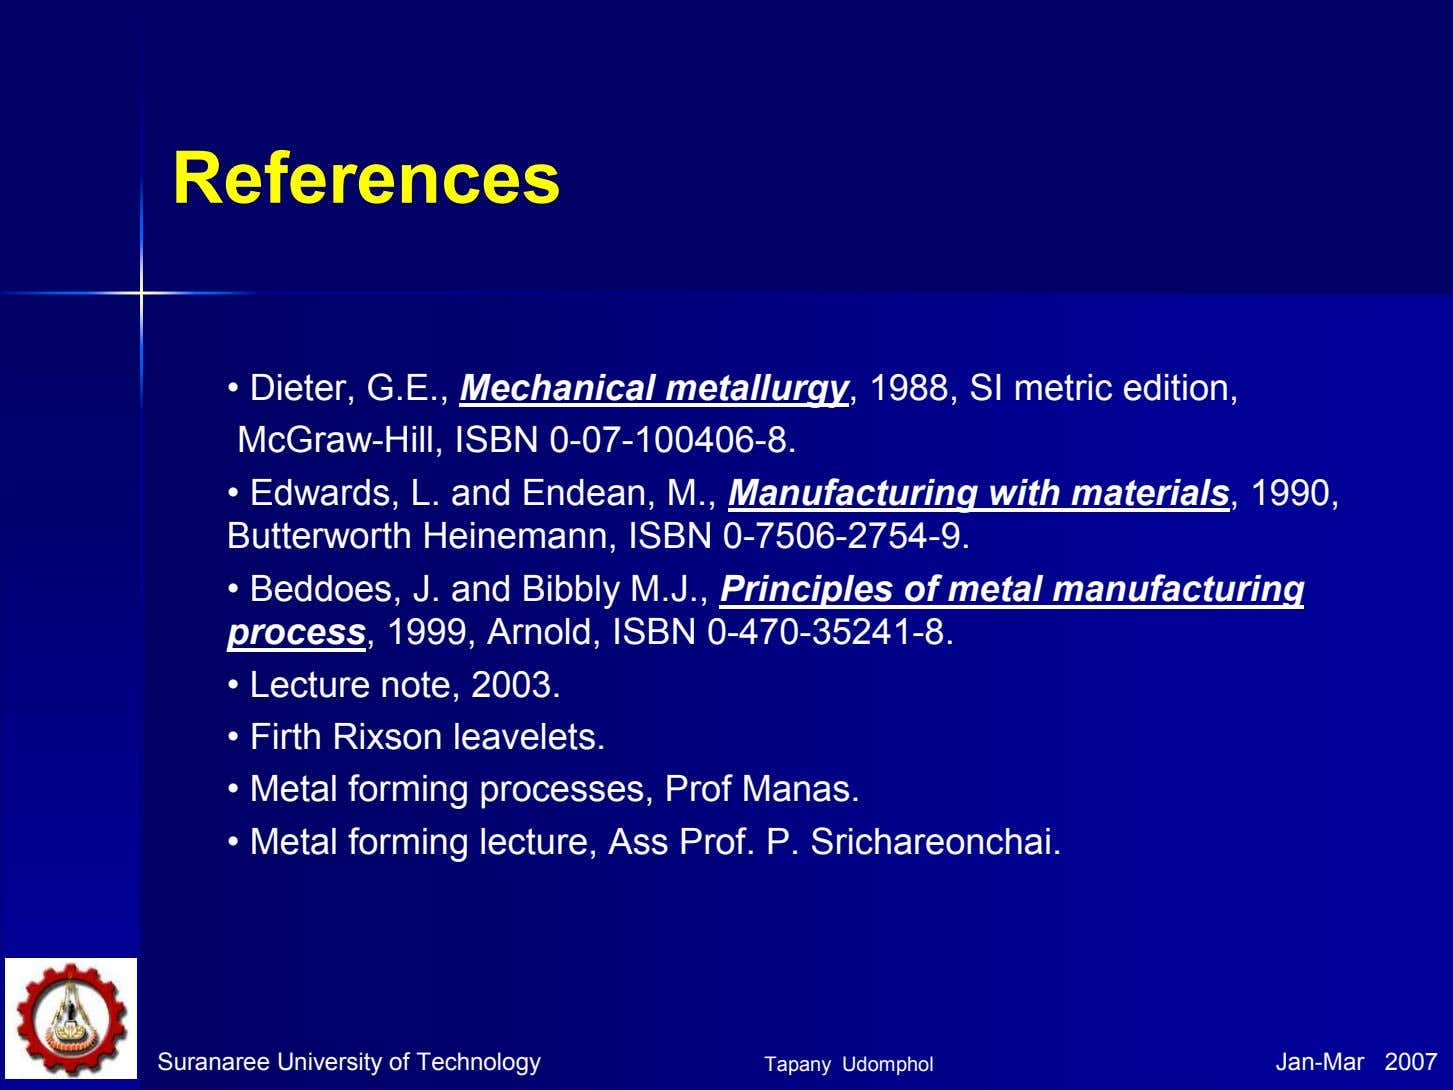 References • Dieter, G.E., Mechanical metallurgy, 1988, SI metric edition, McGraw-Hill, ISBN 0-07-100406-8. •